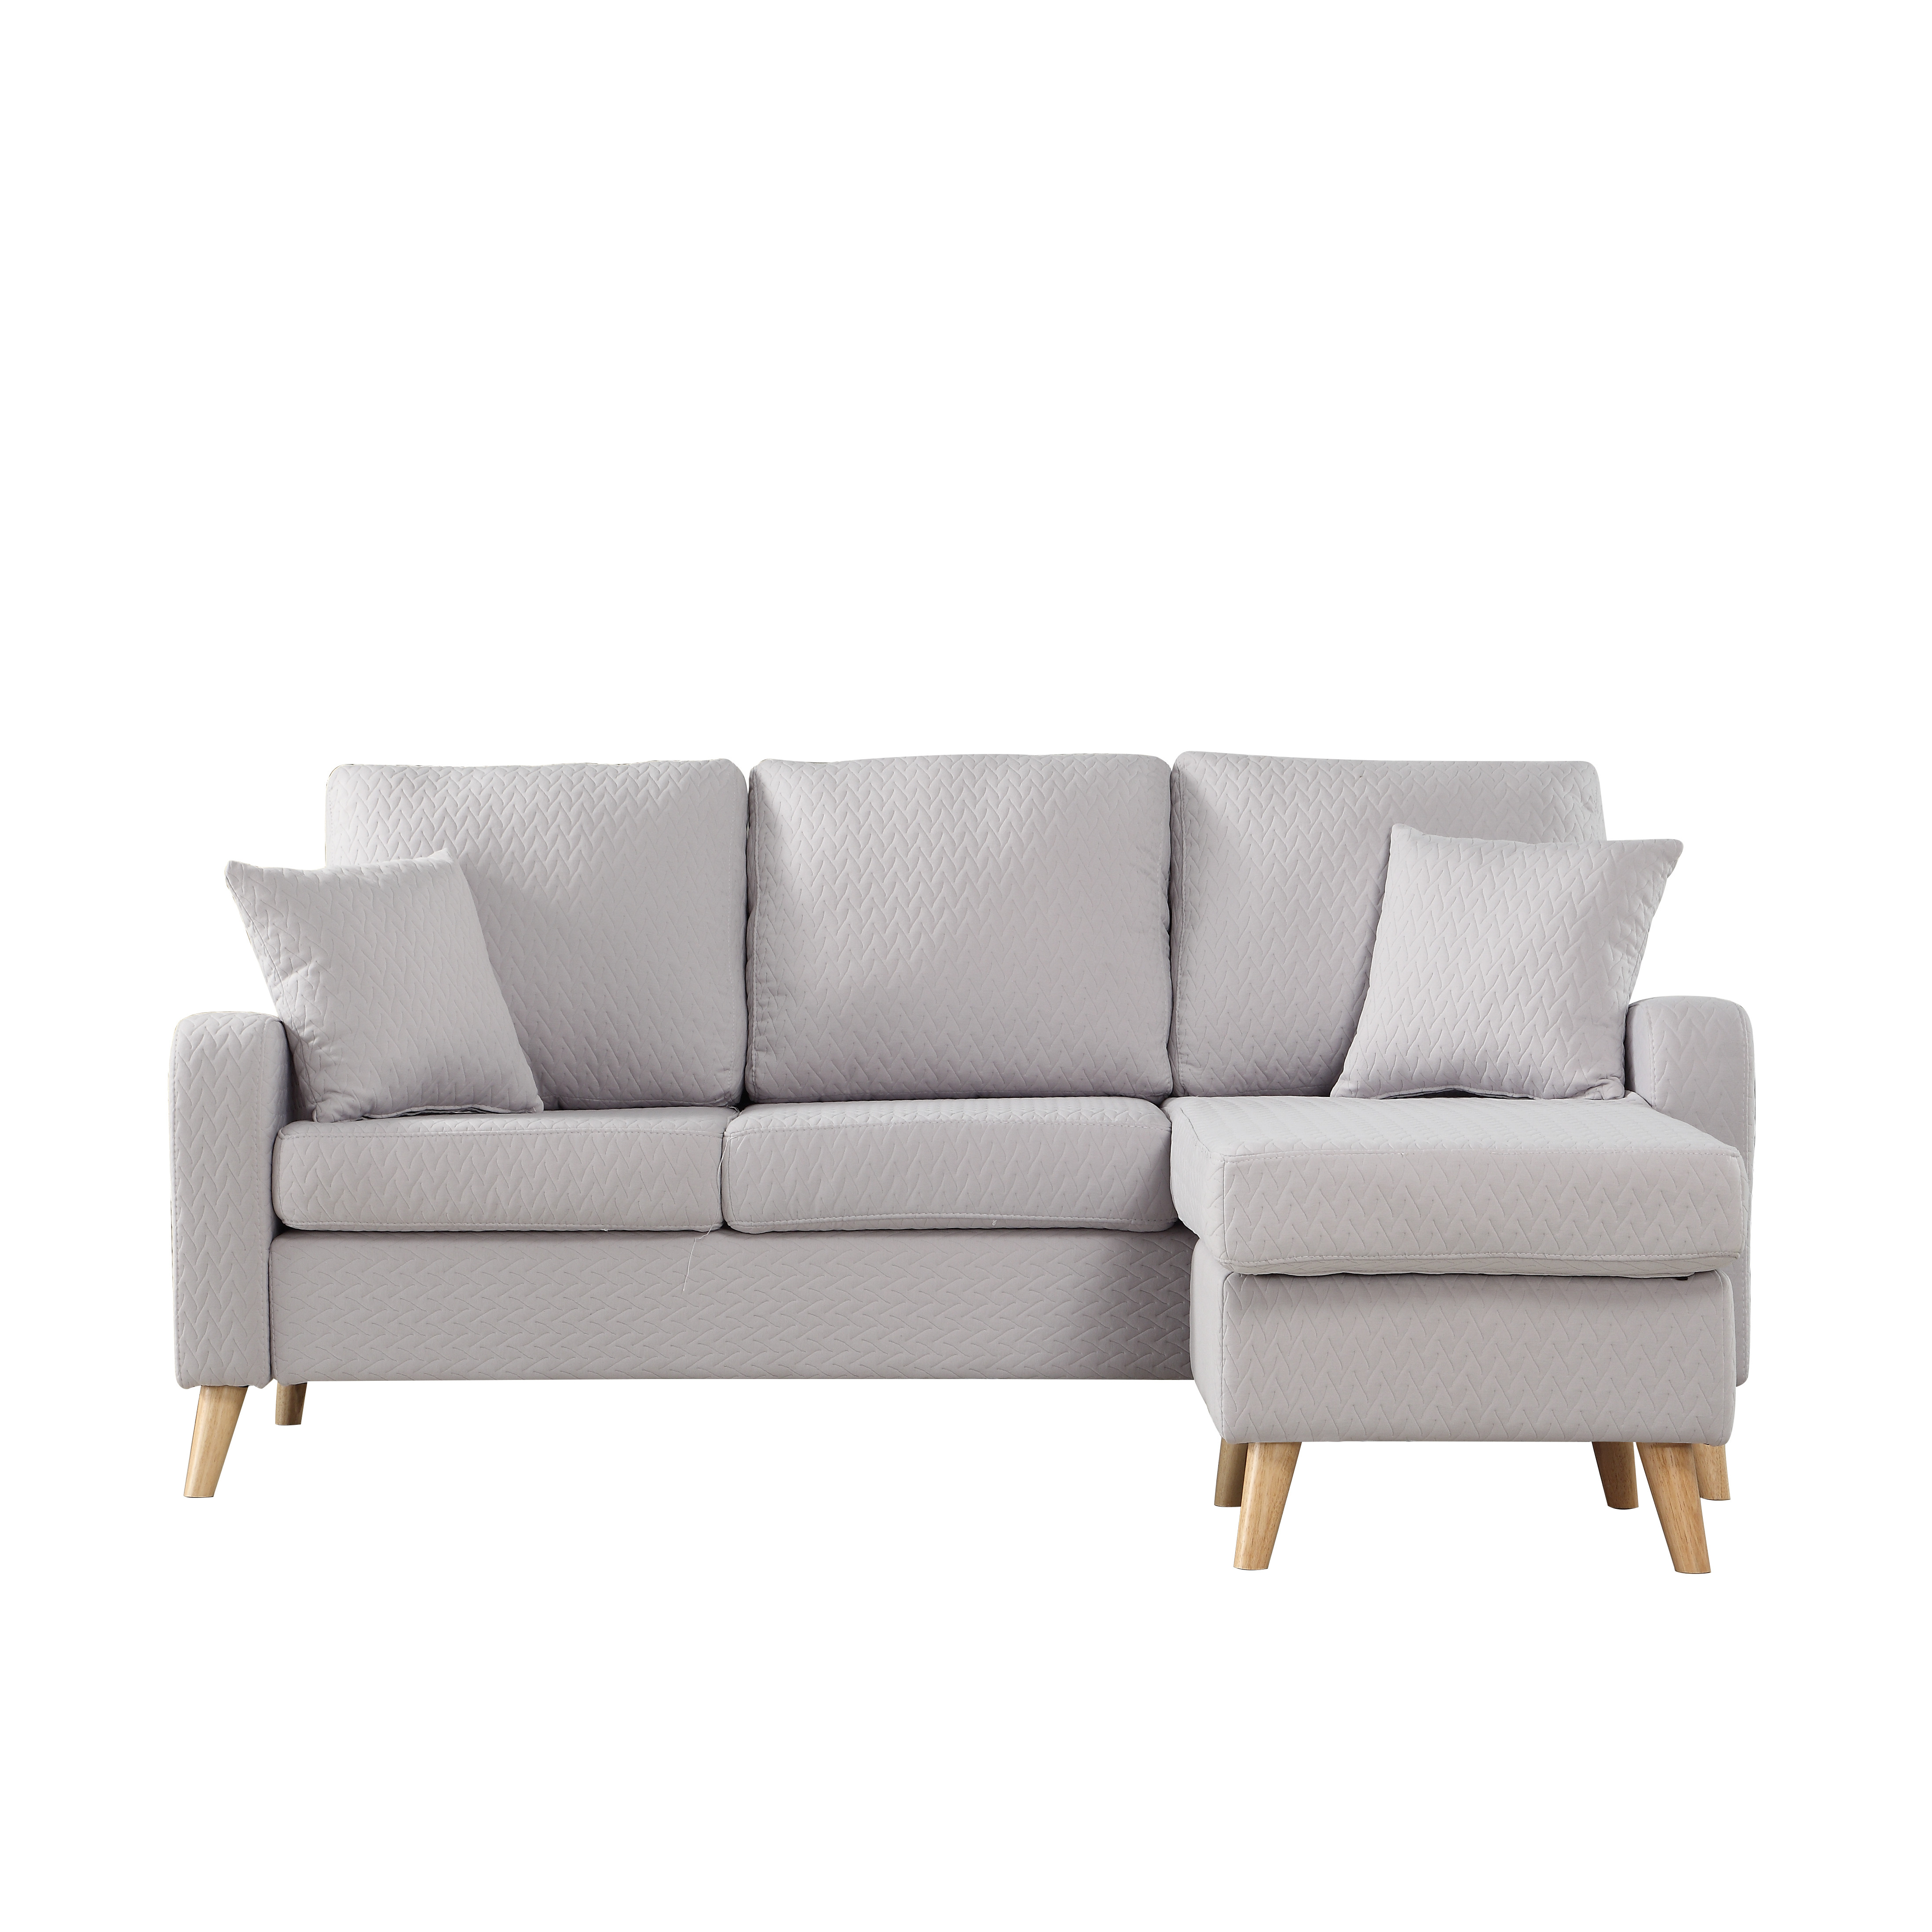 Best ideas about Grey Sectional Sofa With Chaise . Save or Pin Modern Fabric Small Space Sectional Sofa with Reversible Now.